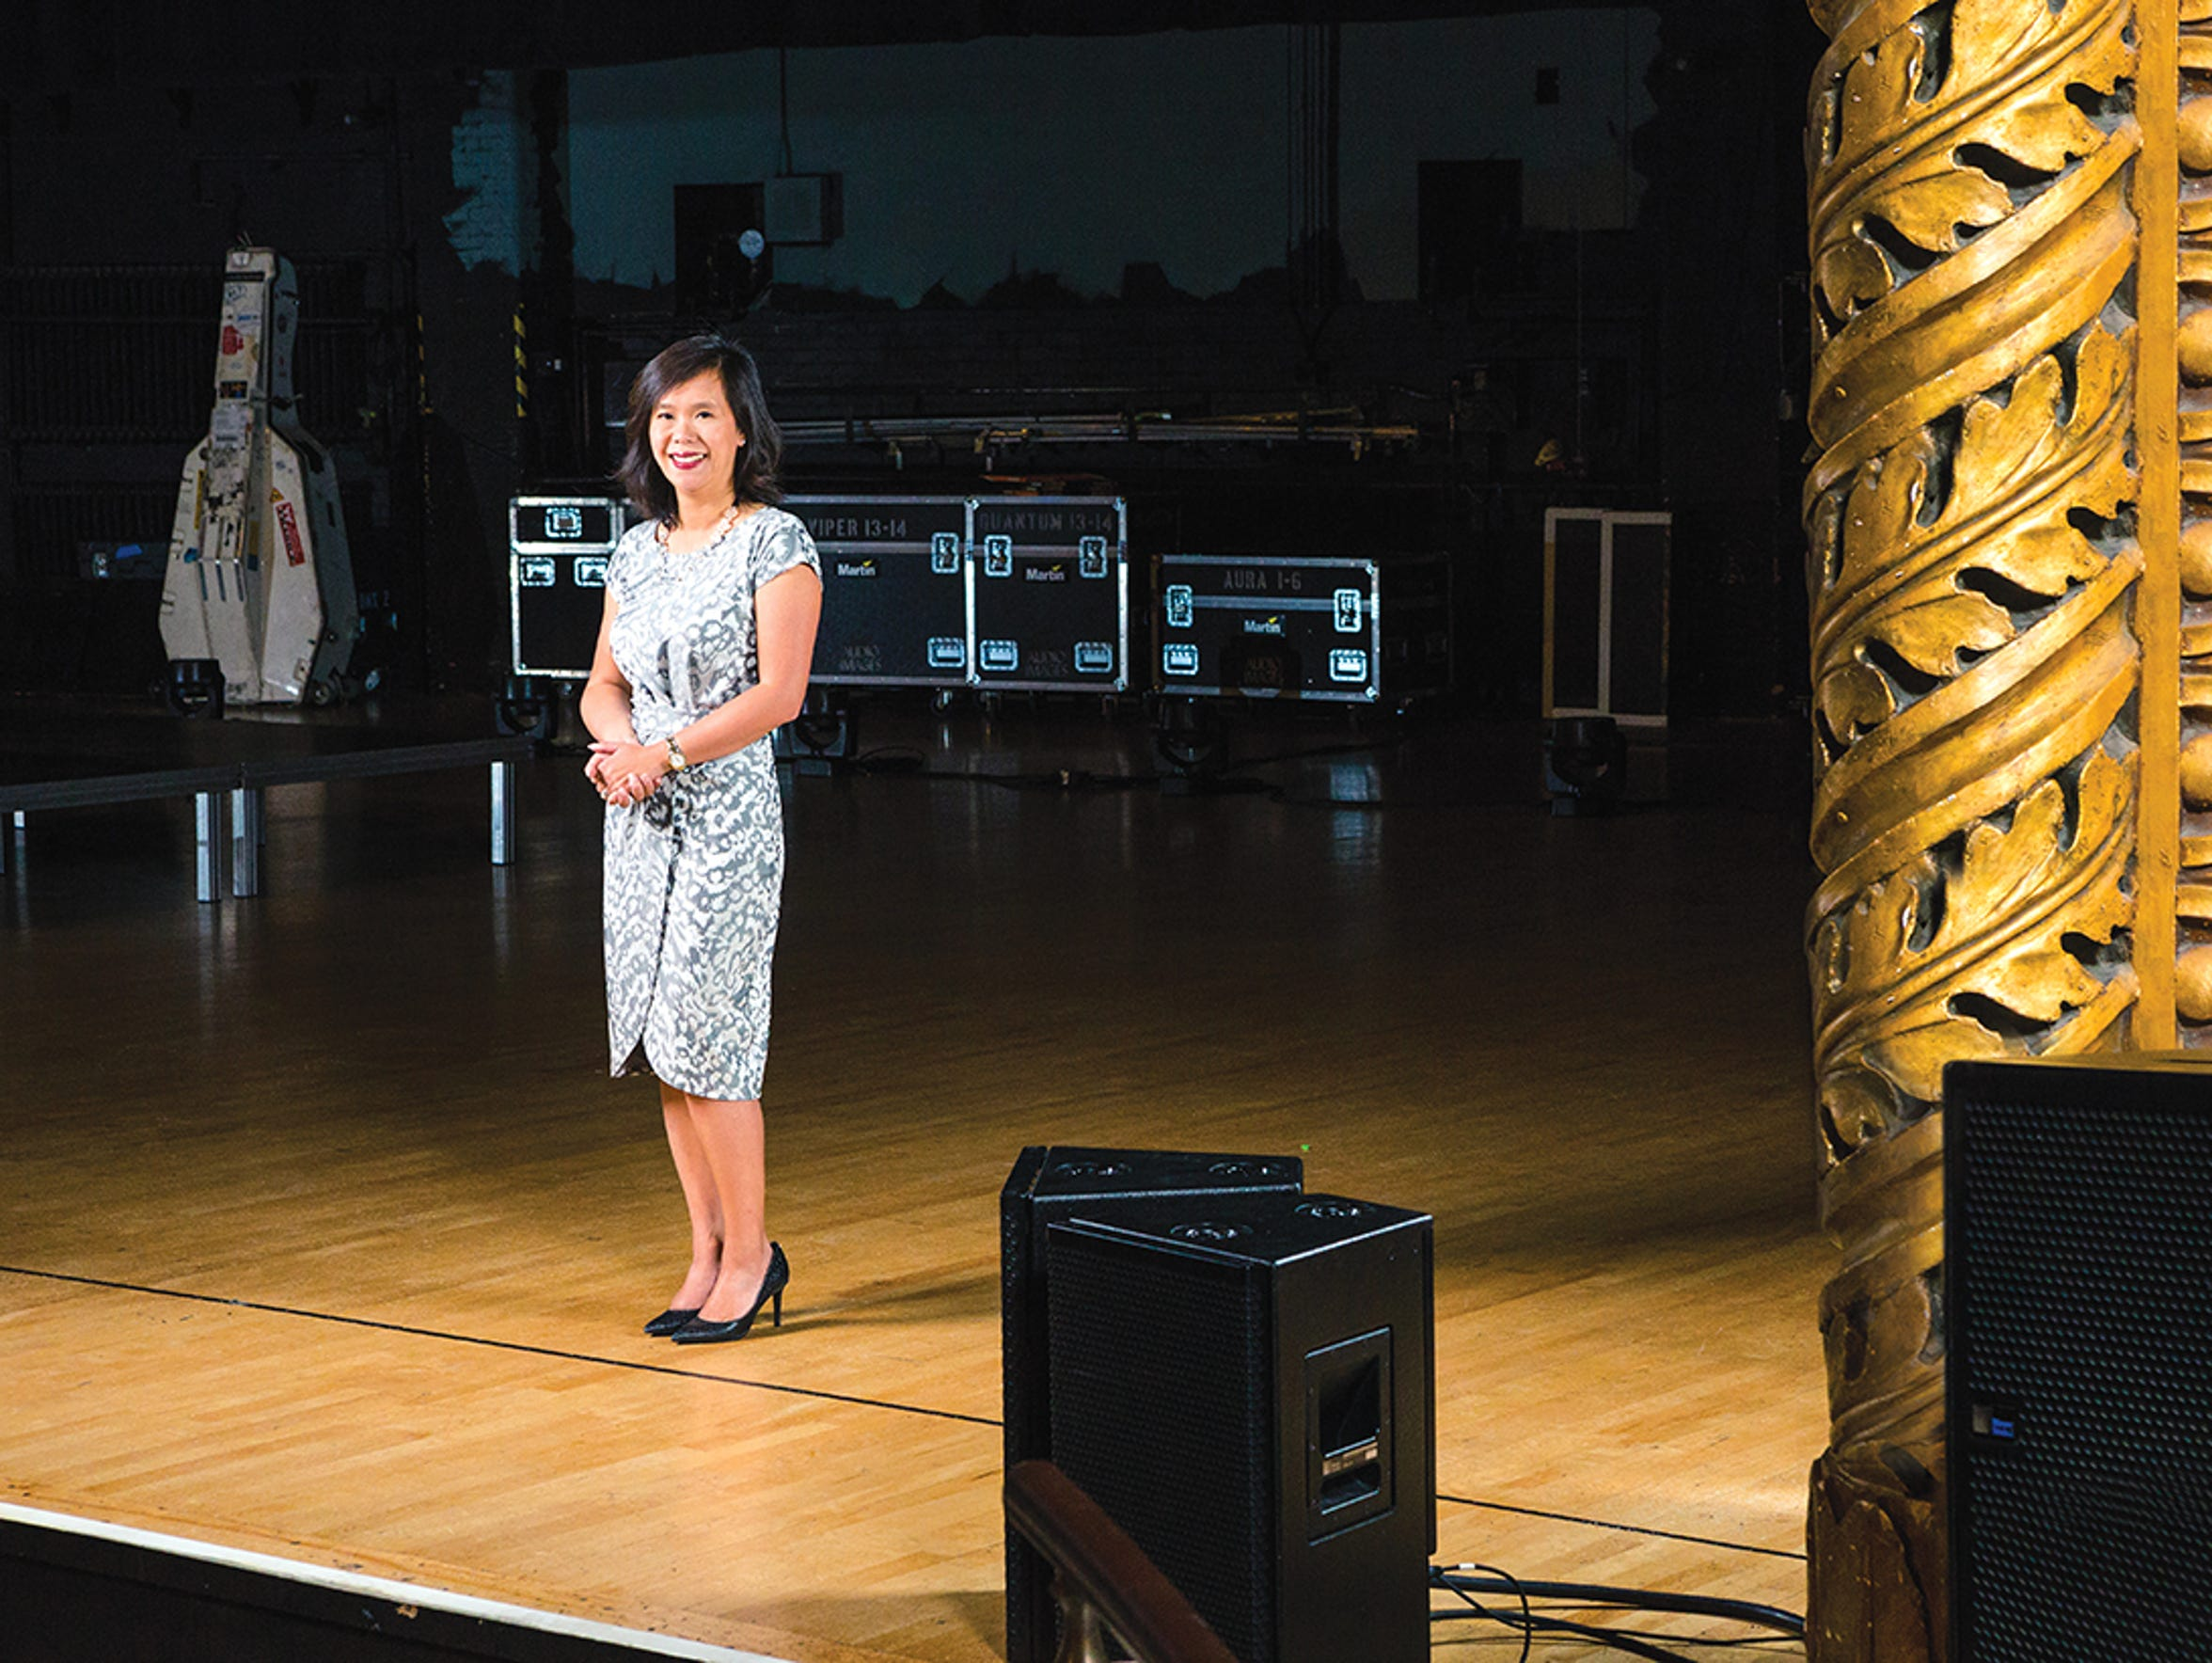 Julia Ng schedules the events at The Eastman School